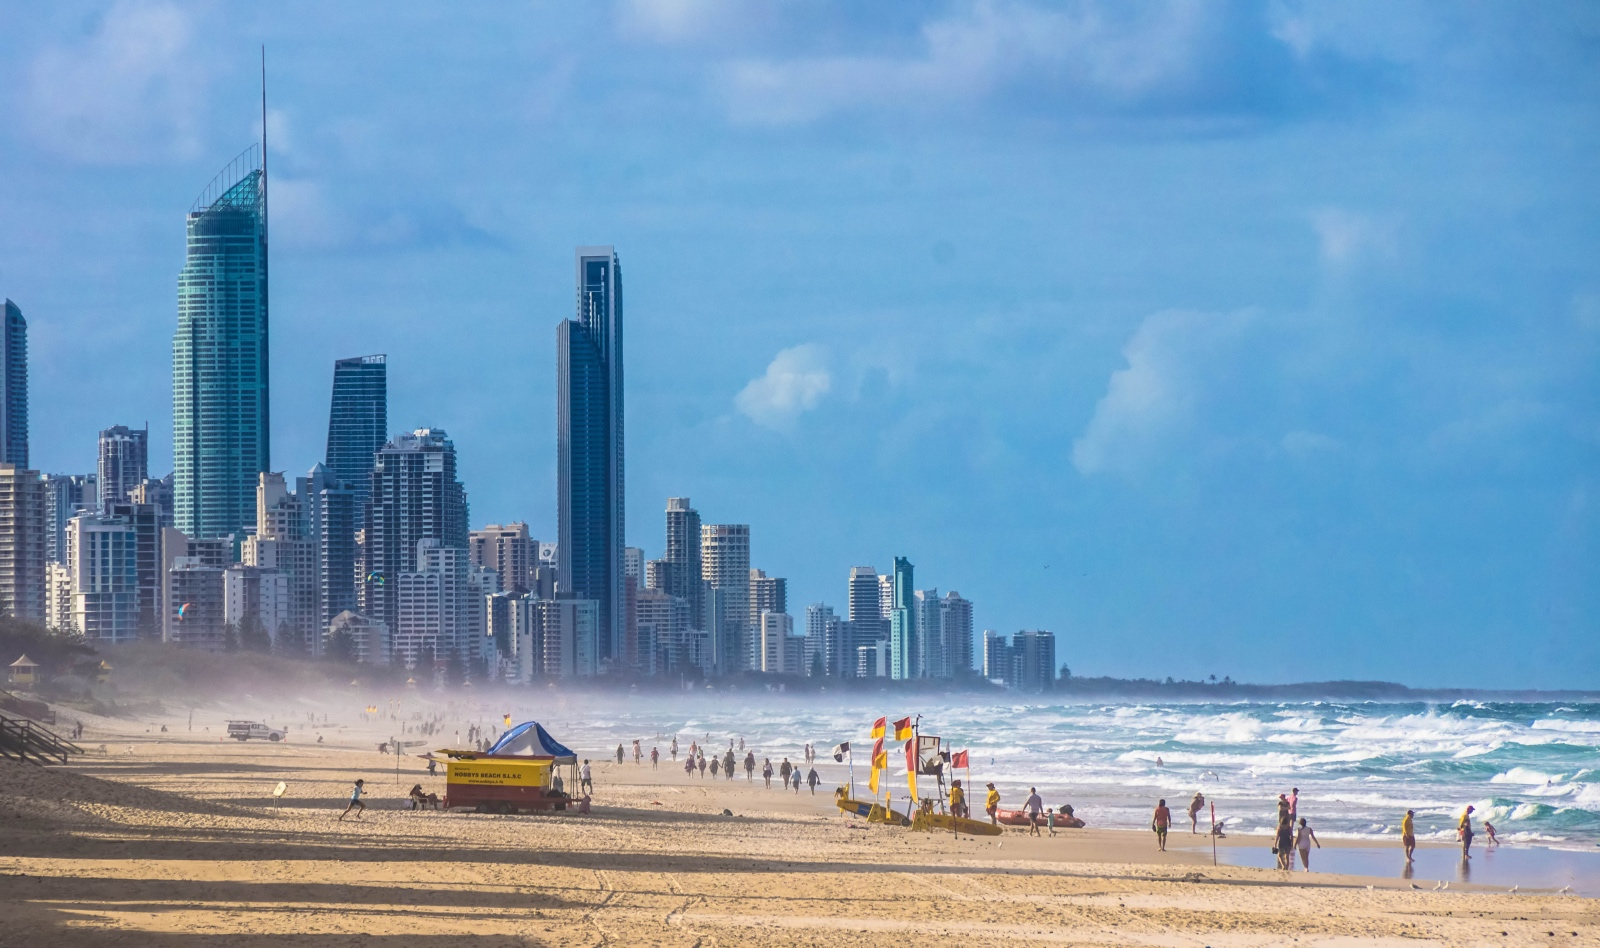 Gold Coast skyline, Australia